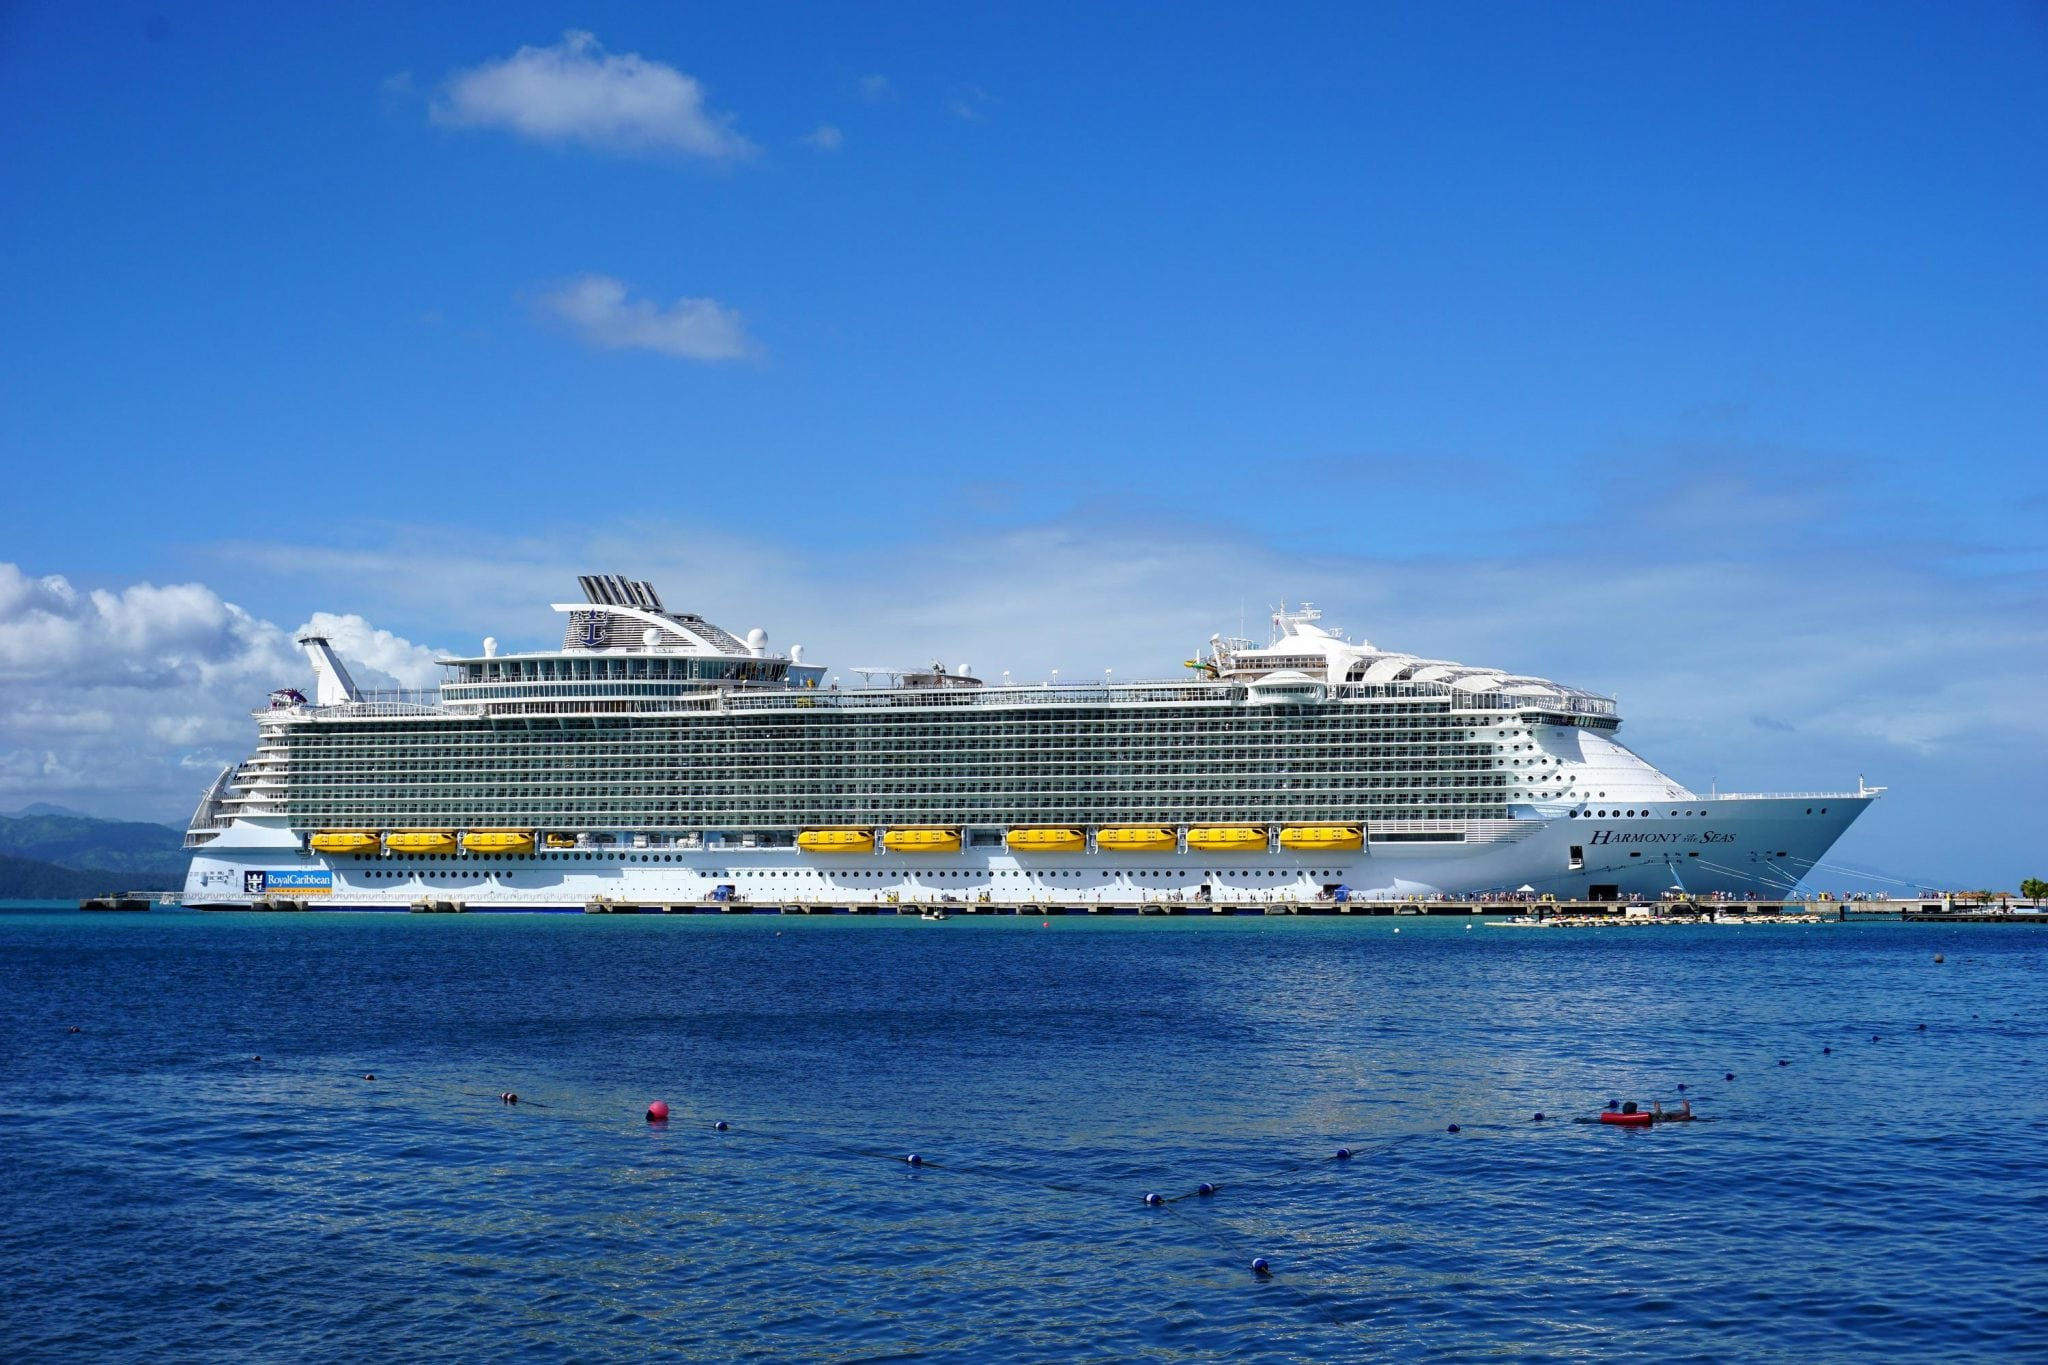 Top 6 Reasons to Get Travel Insurance for a Cruise